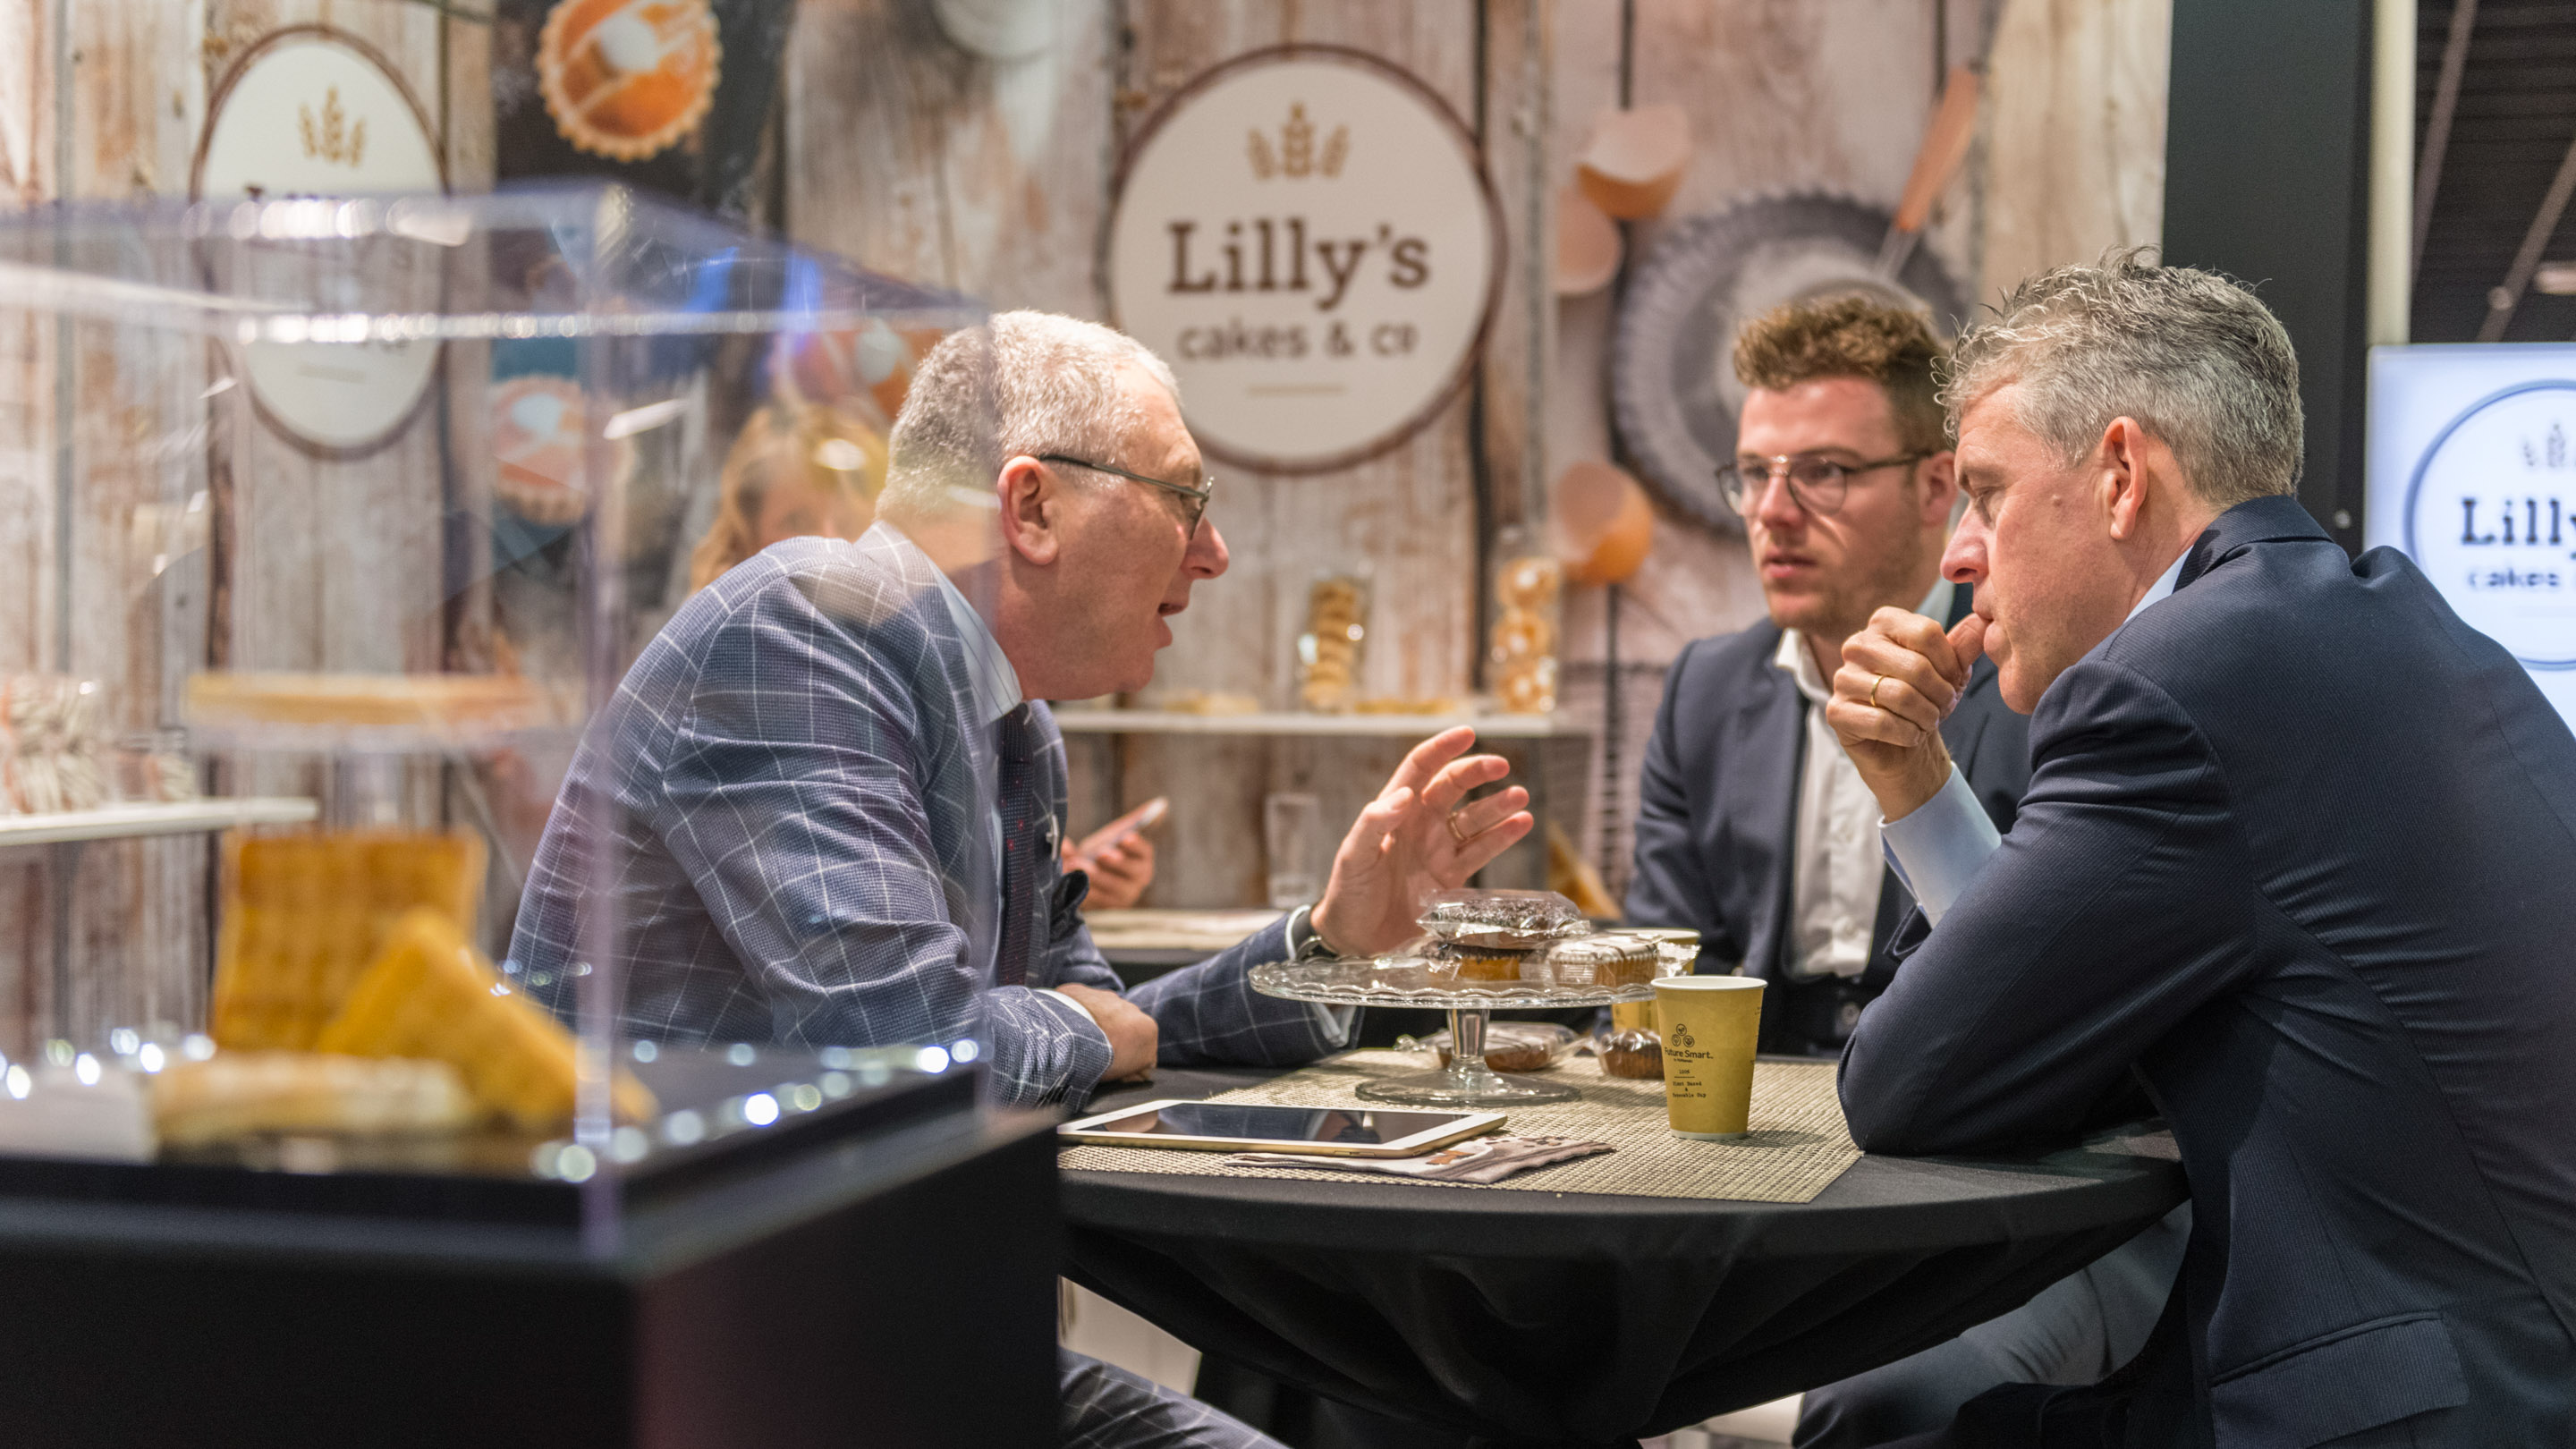 Stand: Lilly's, Halle 4.2, ISM 2020